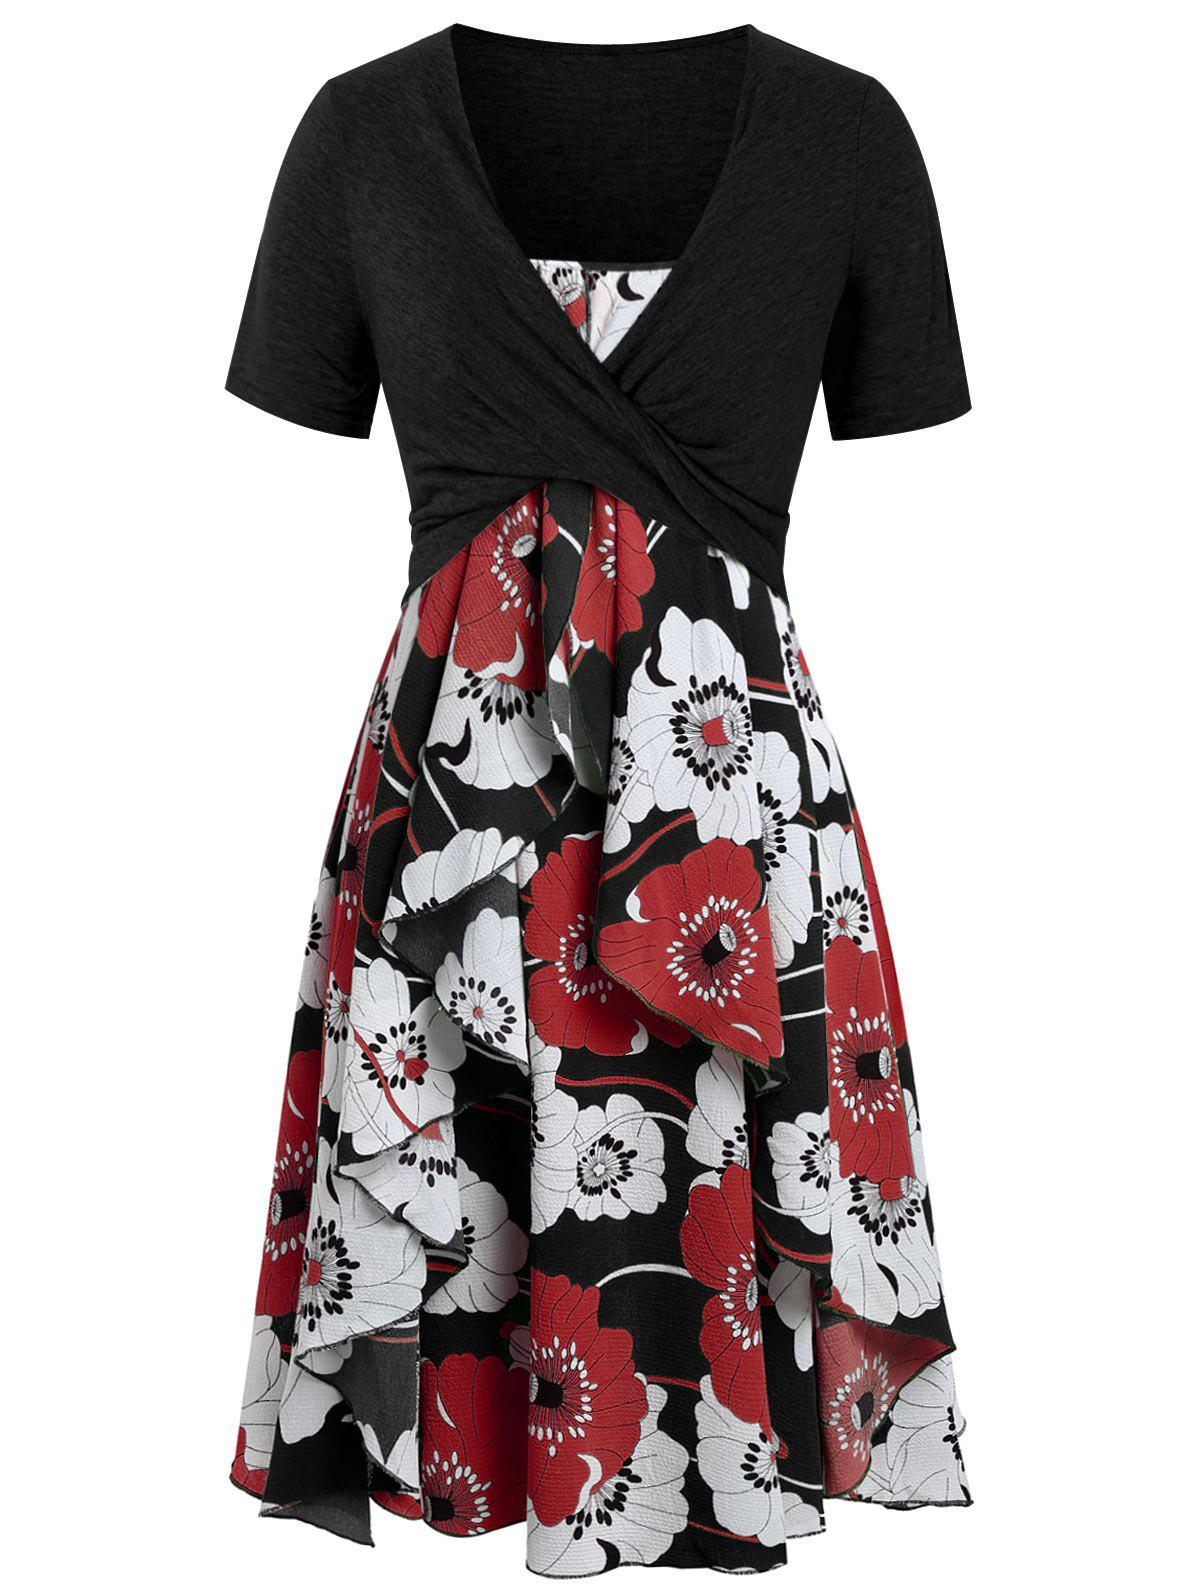 Plus Size Floral Print Layered Cami Dress With Criss Cross Crop Top - BLACK 2X